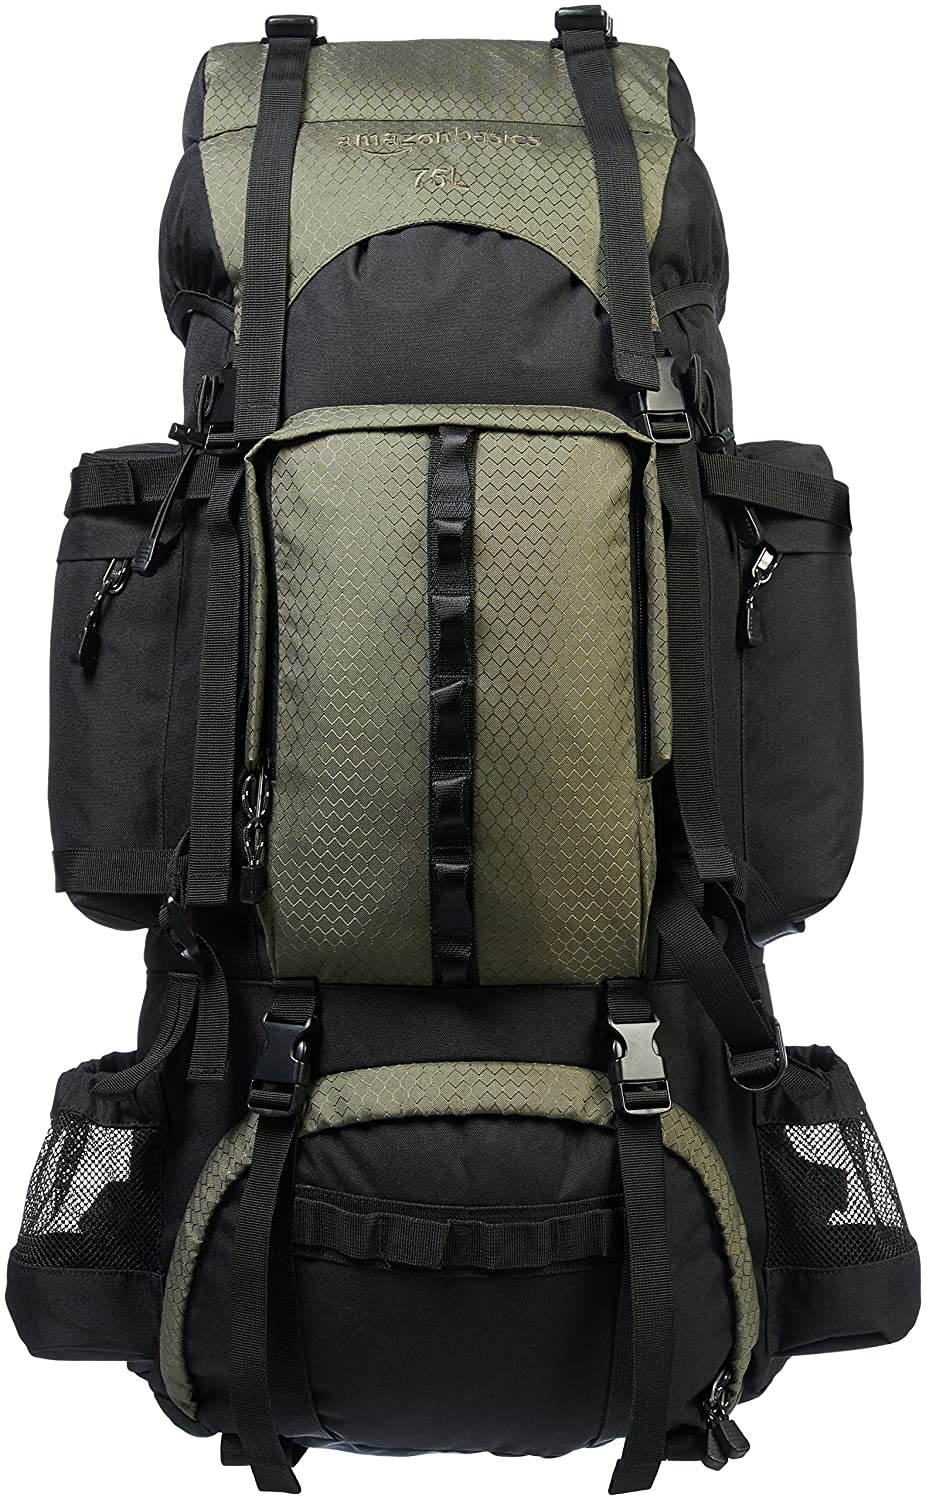 AmazonBasics Internal Frame (Hardback) Hiking Backpack with